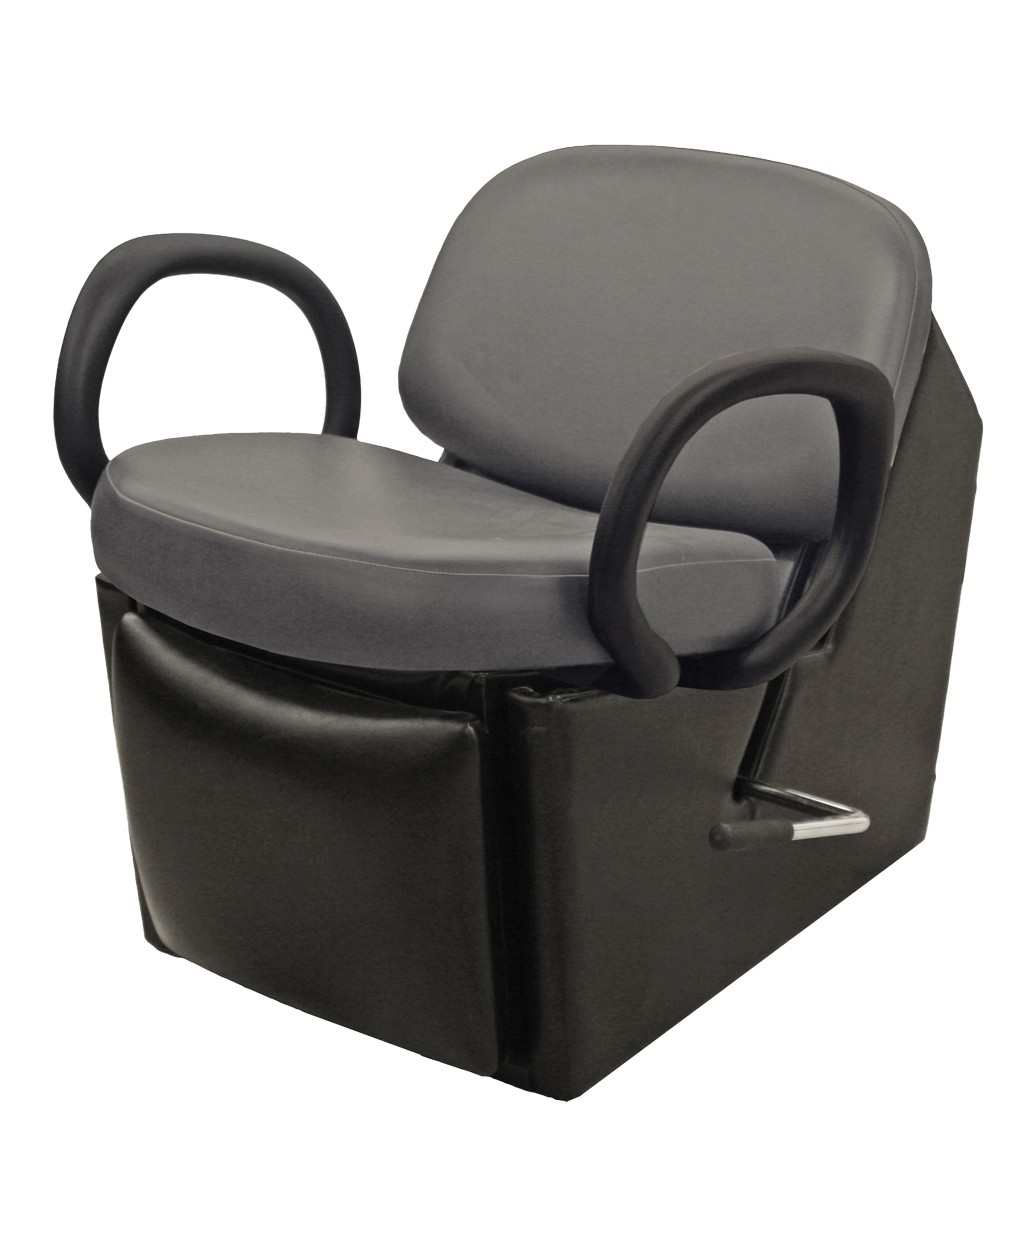 16 ES Electric Shampoo Chair with Leg Rest